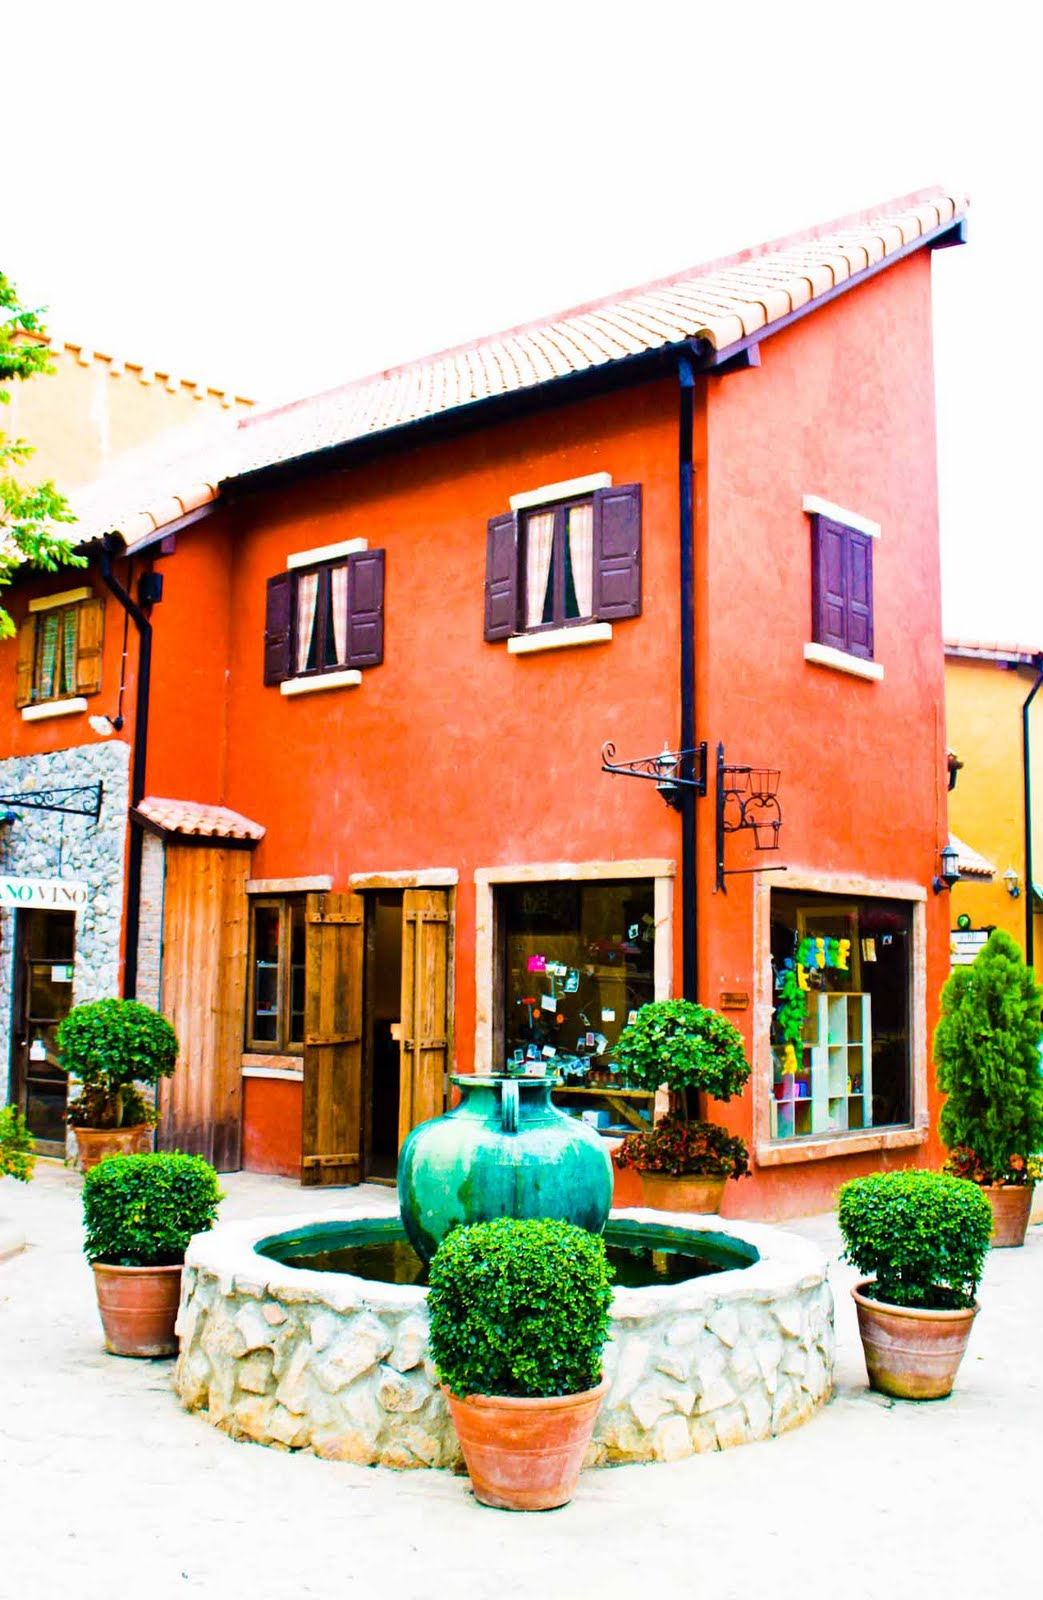 Europe style house free photo Europe style house